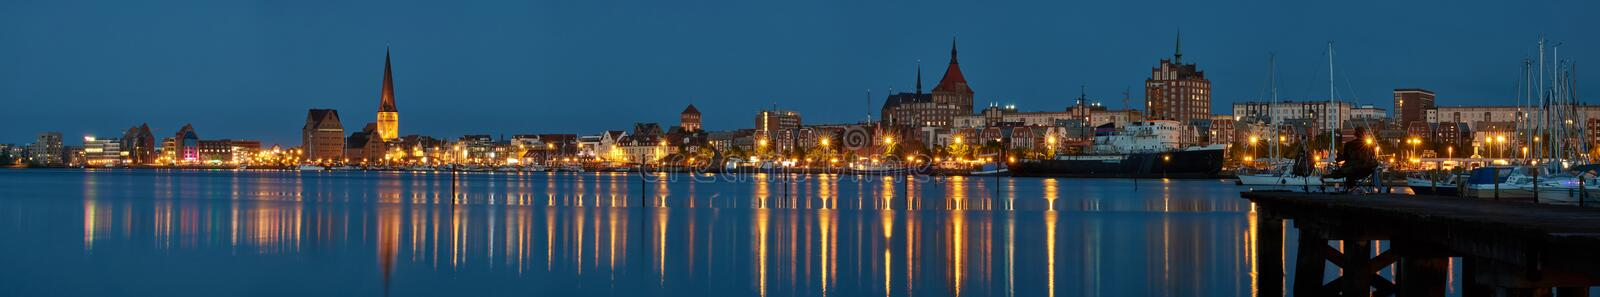 Rostock panoramic view at evening royalty free stock photo